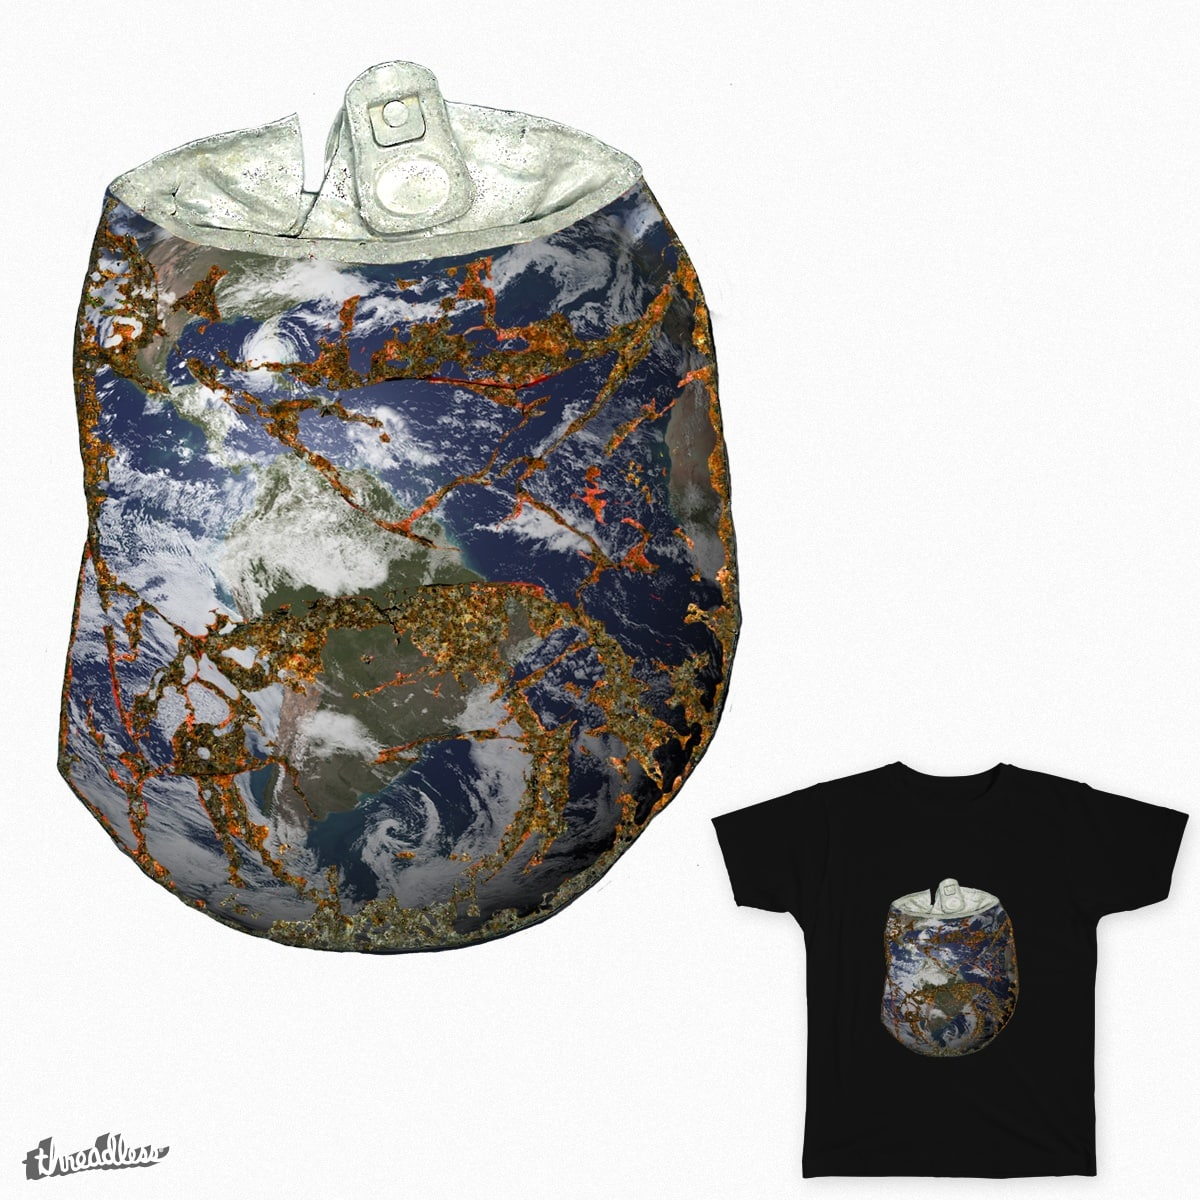 litterworld by mikbulp on Threadless